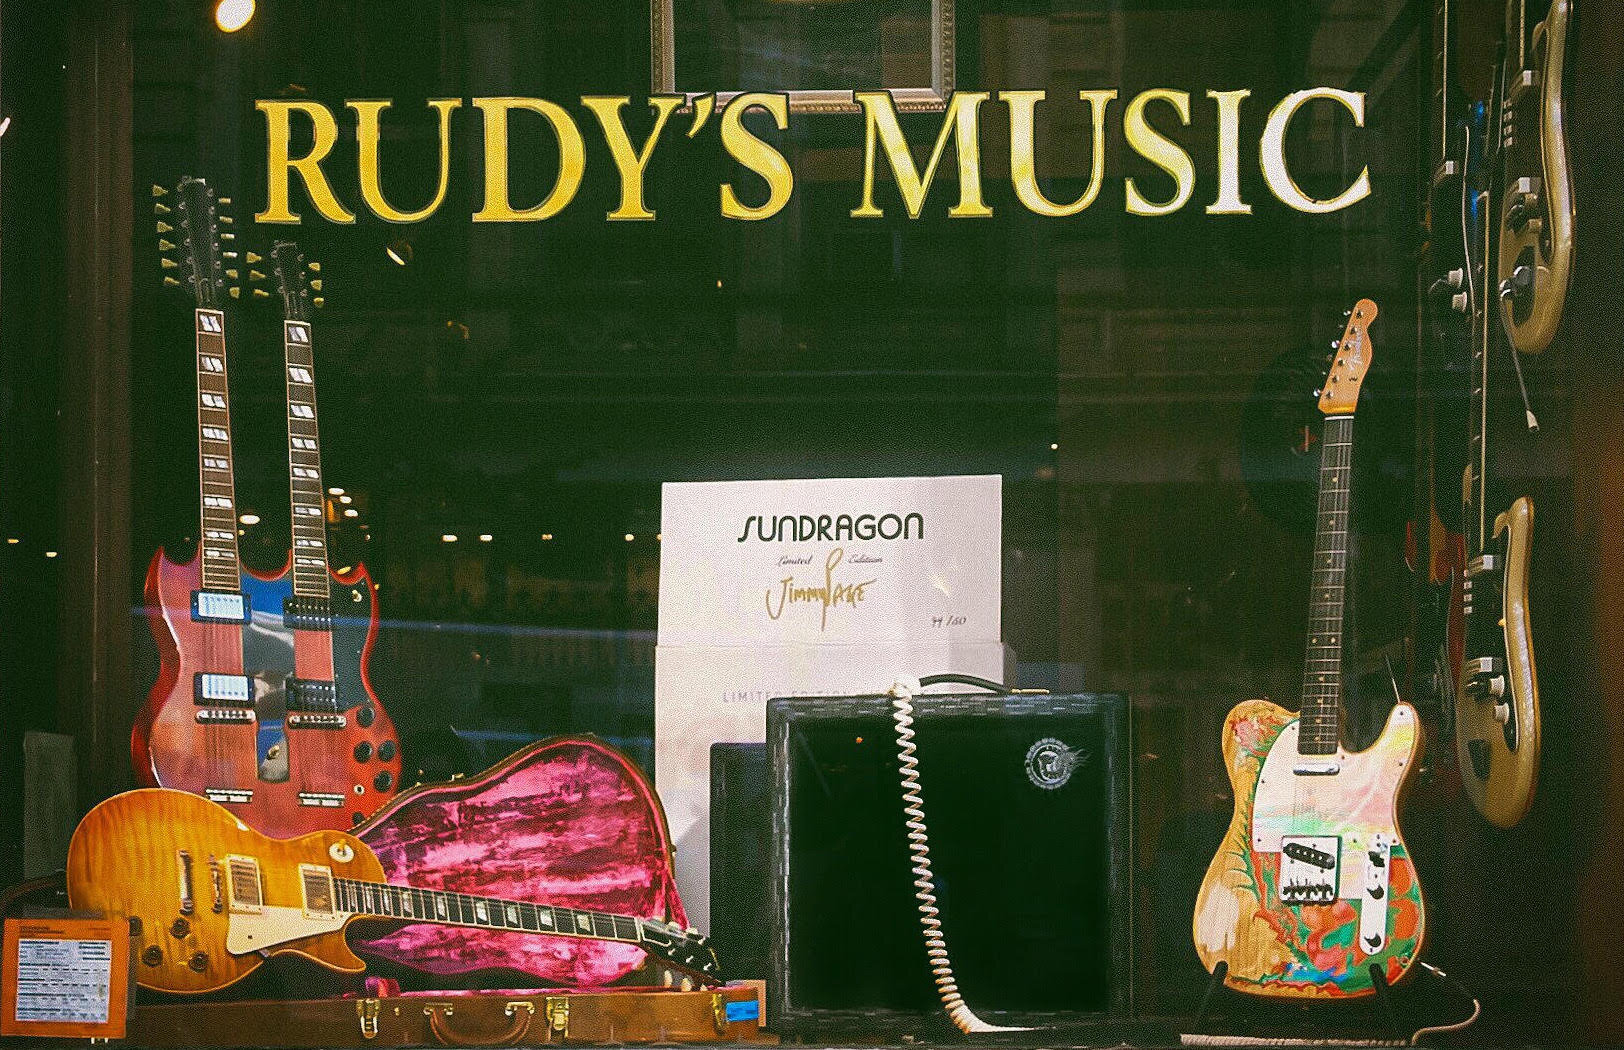 Rudy's Music display